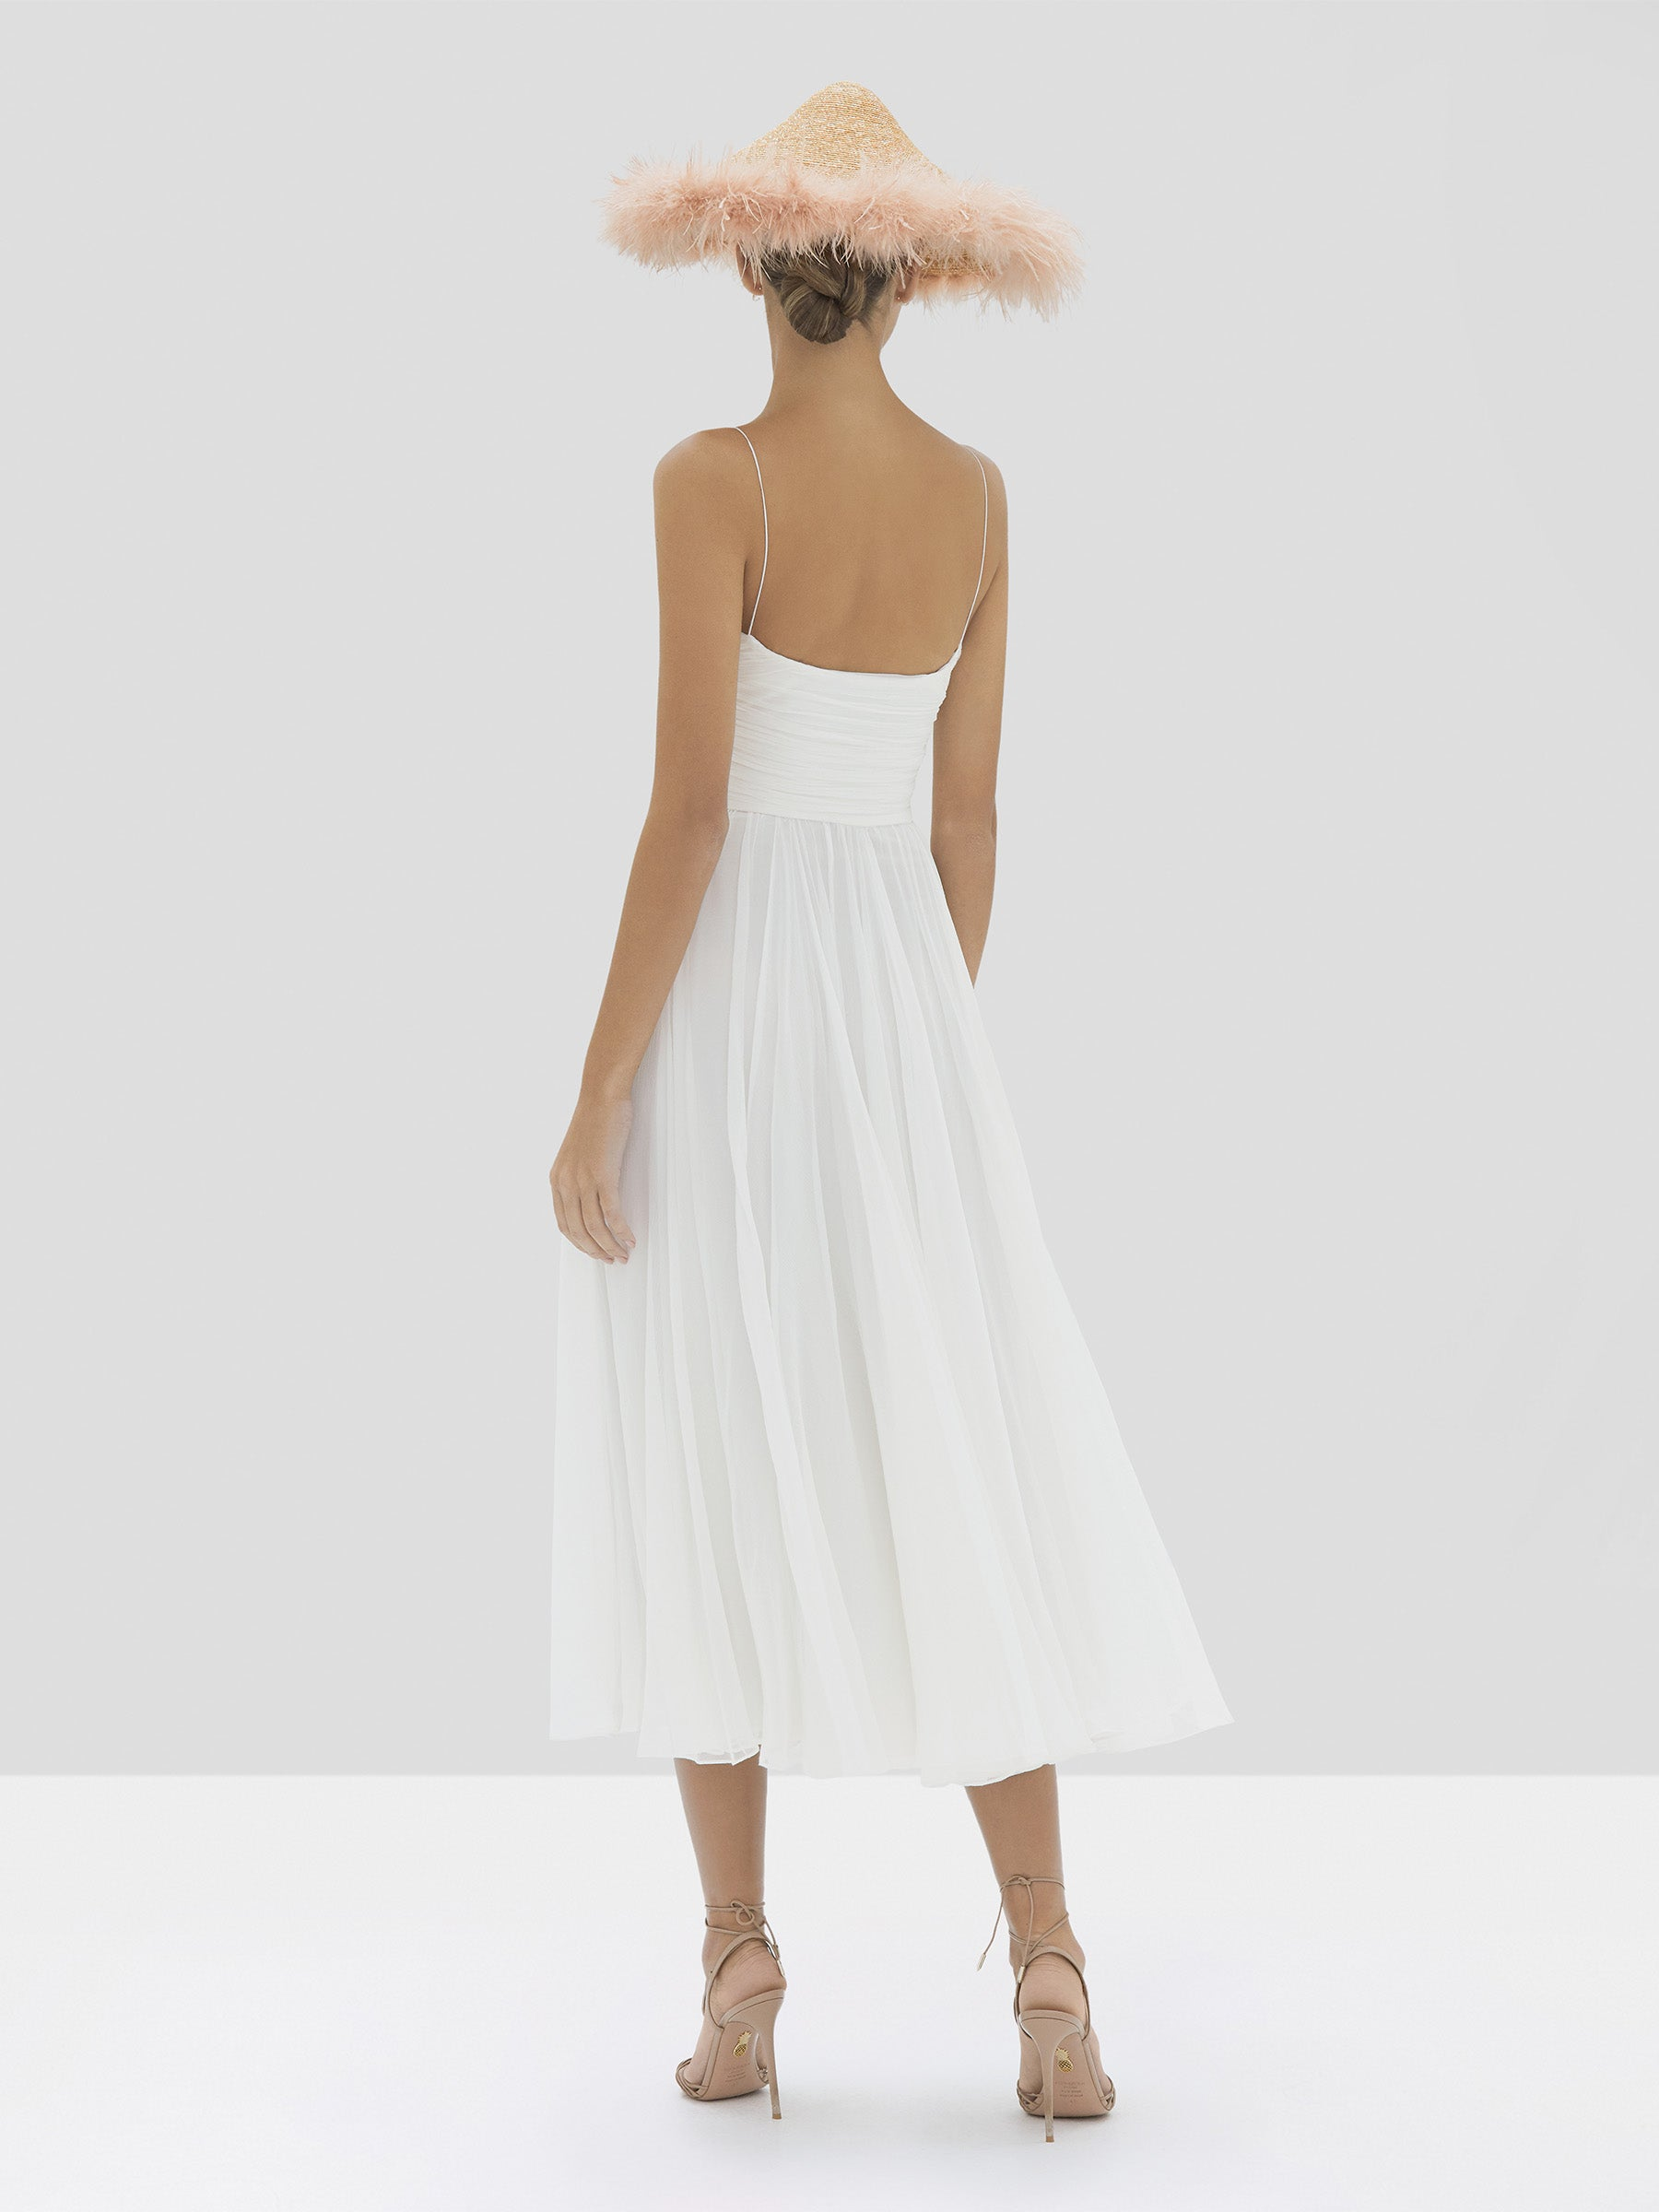 Alexis Sarrana Dress in White from Spring Summer 2020 Collection - Rear View